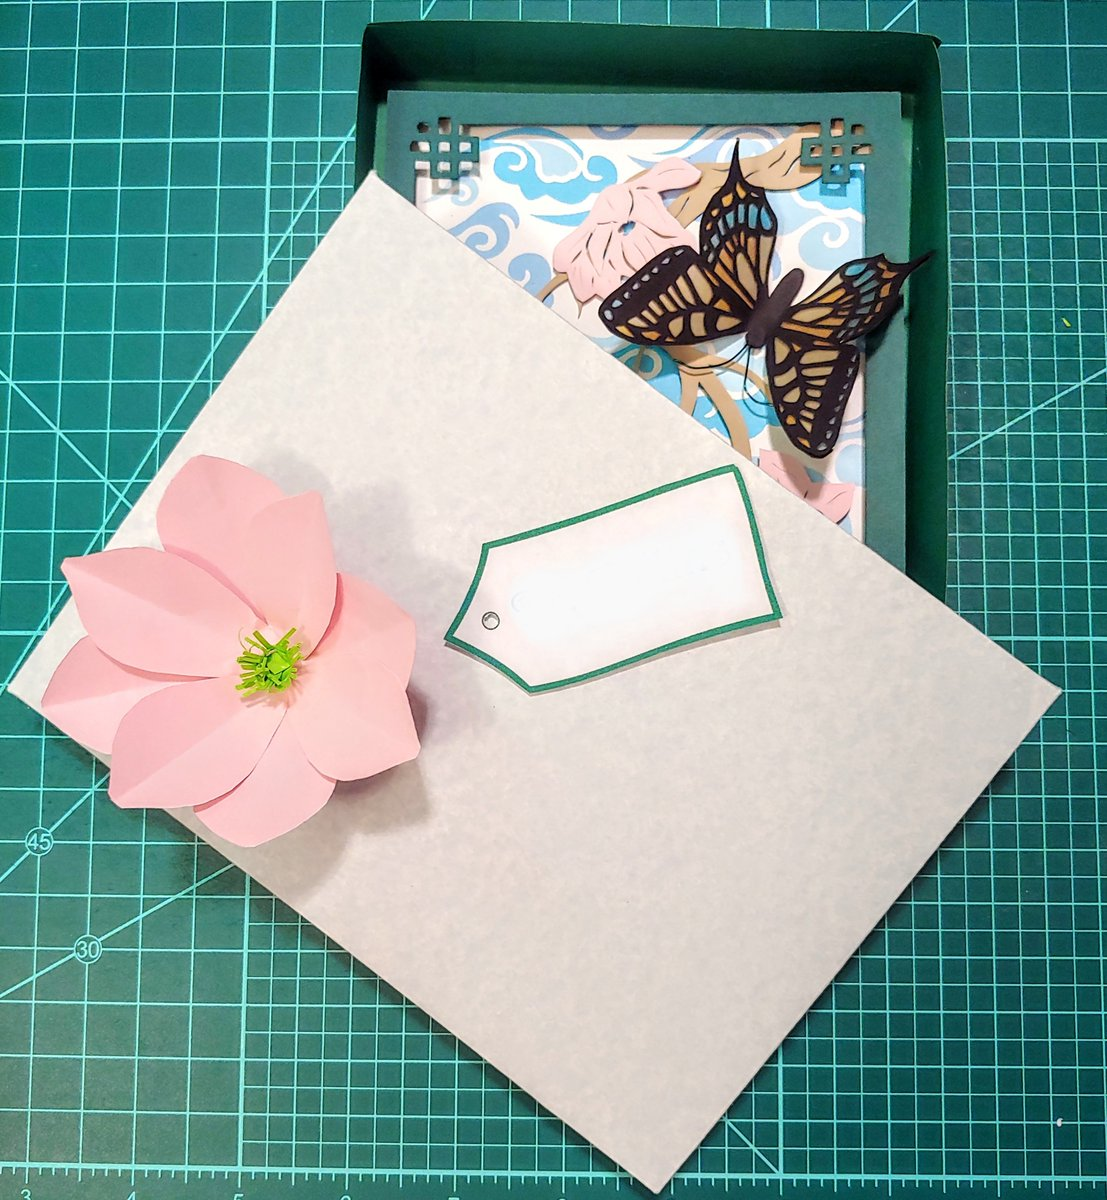 Since the #papercut thank you card won't fit in an envelope, I made a gift box with a paper magnolia on the lid. #papercrafts #paperart https://t.co/uhkHdmenR2